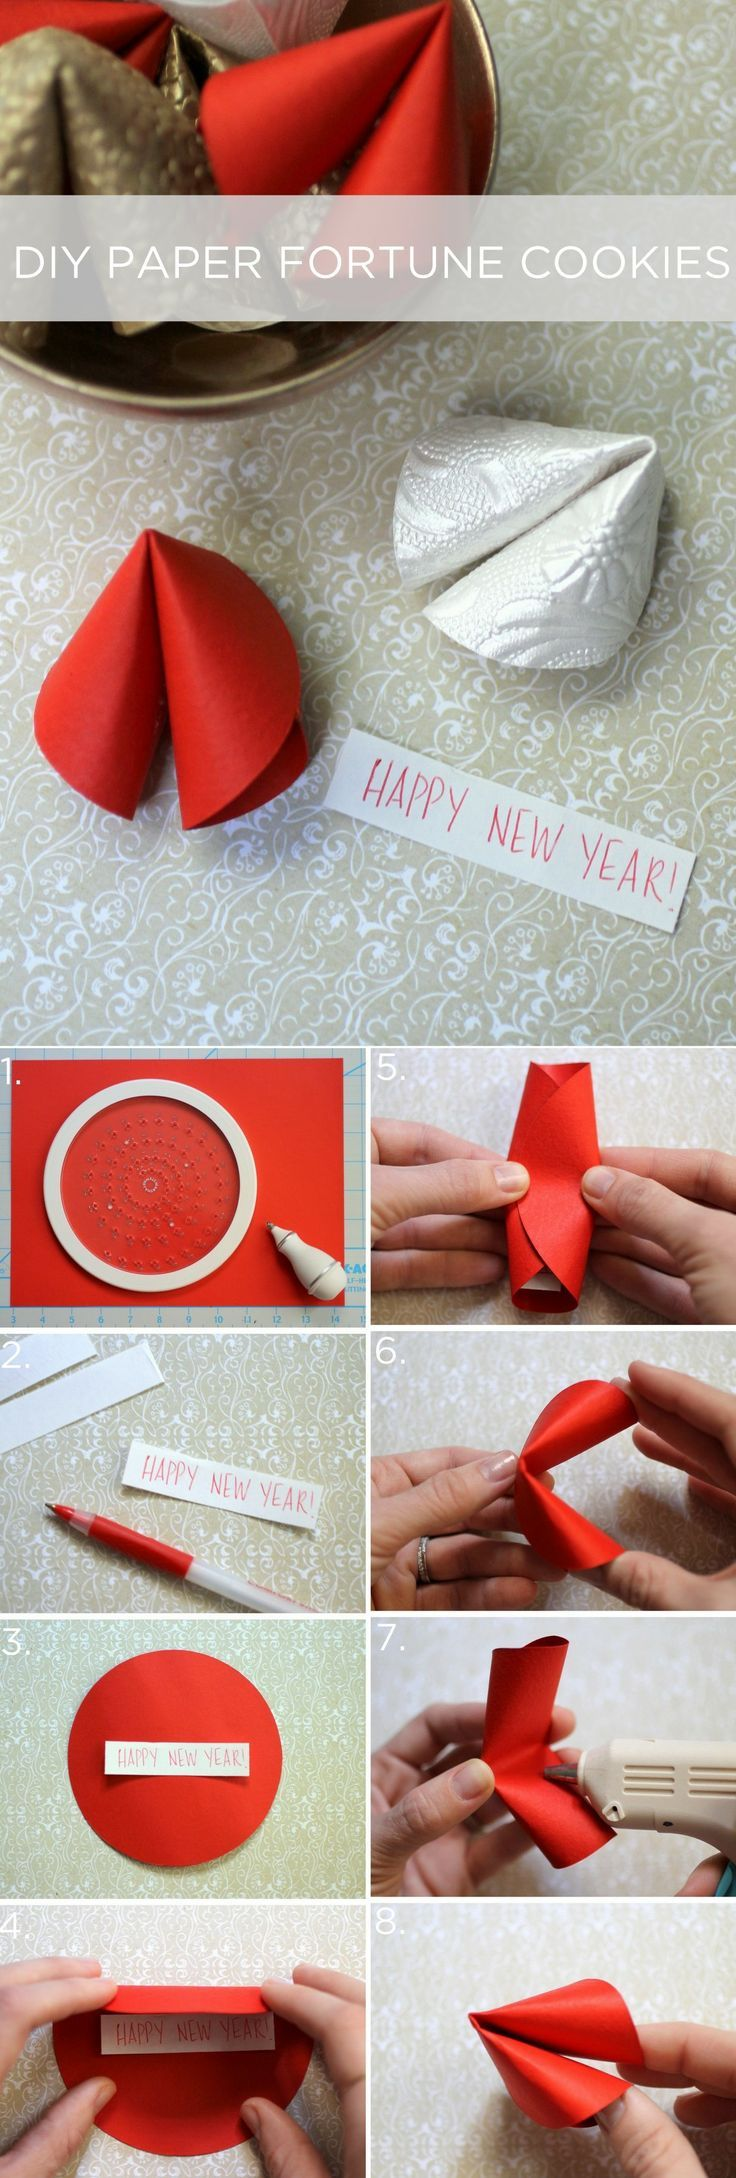 DIY Paper Fortune Cookies Pictures Photos And Images For